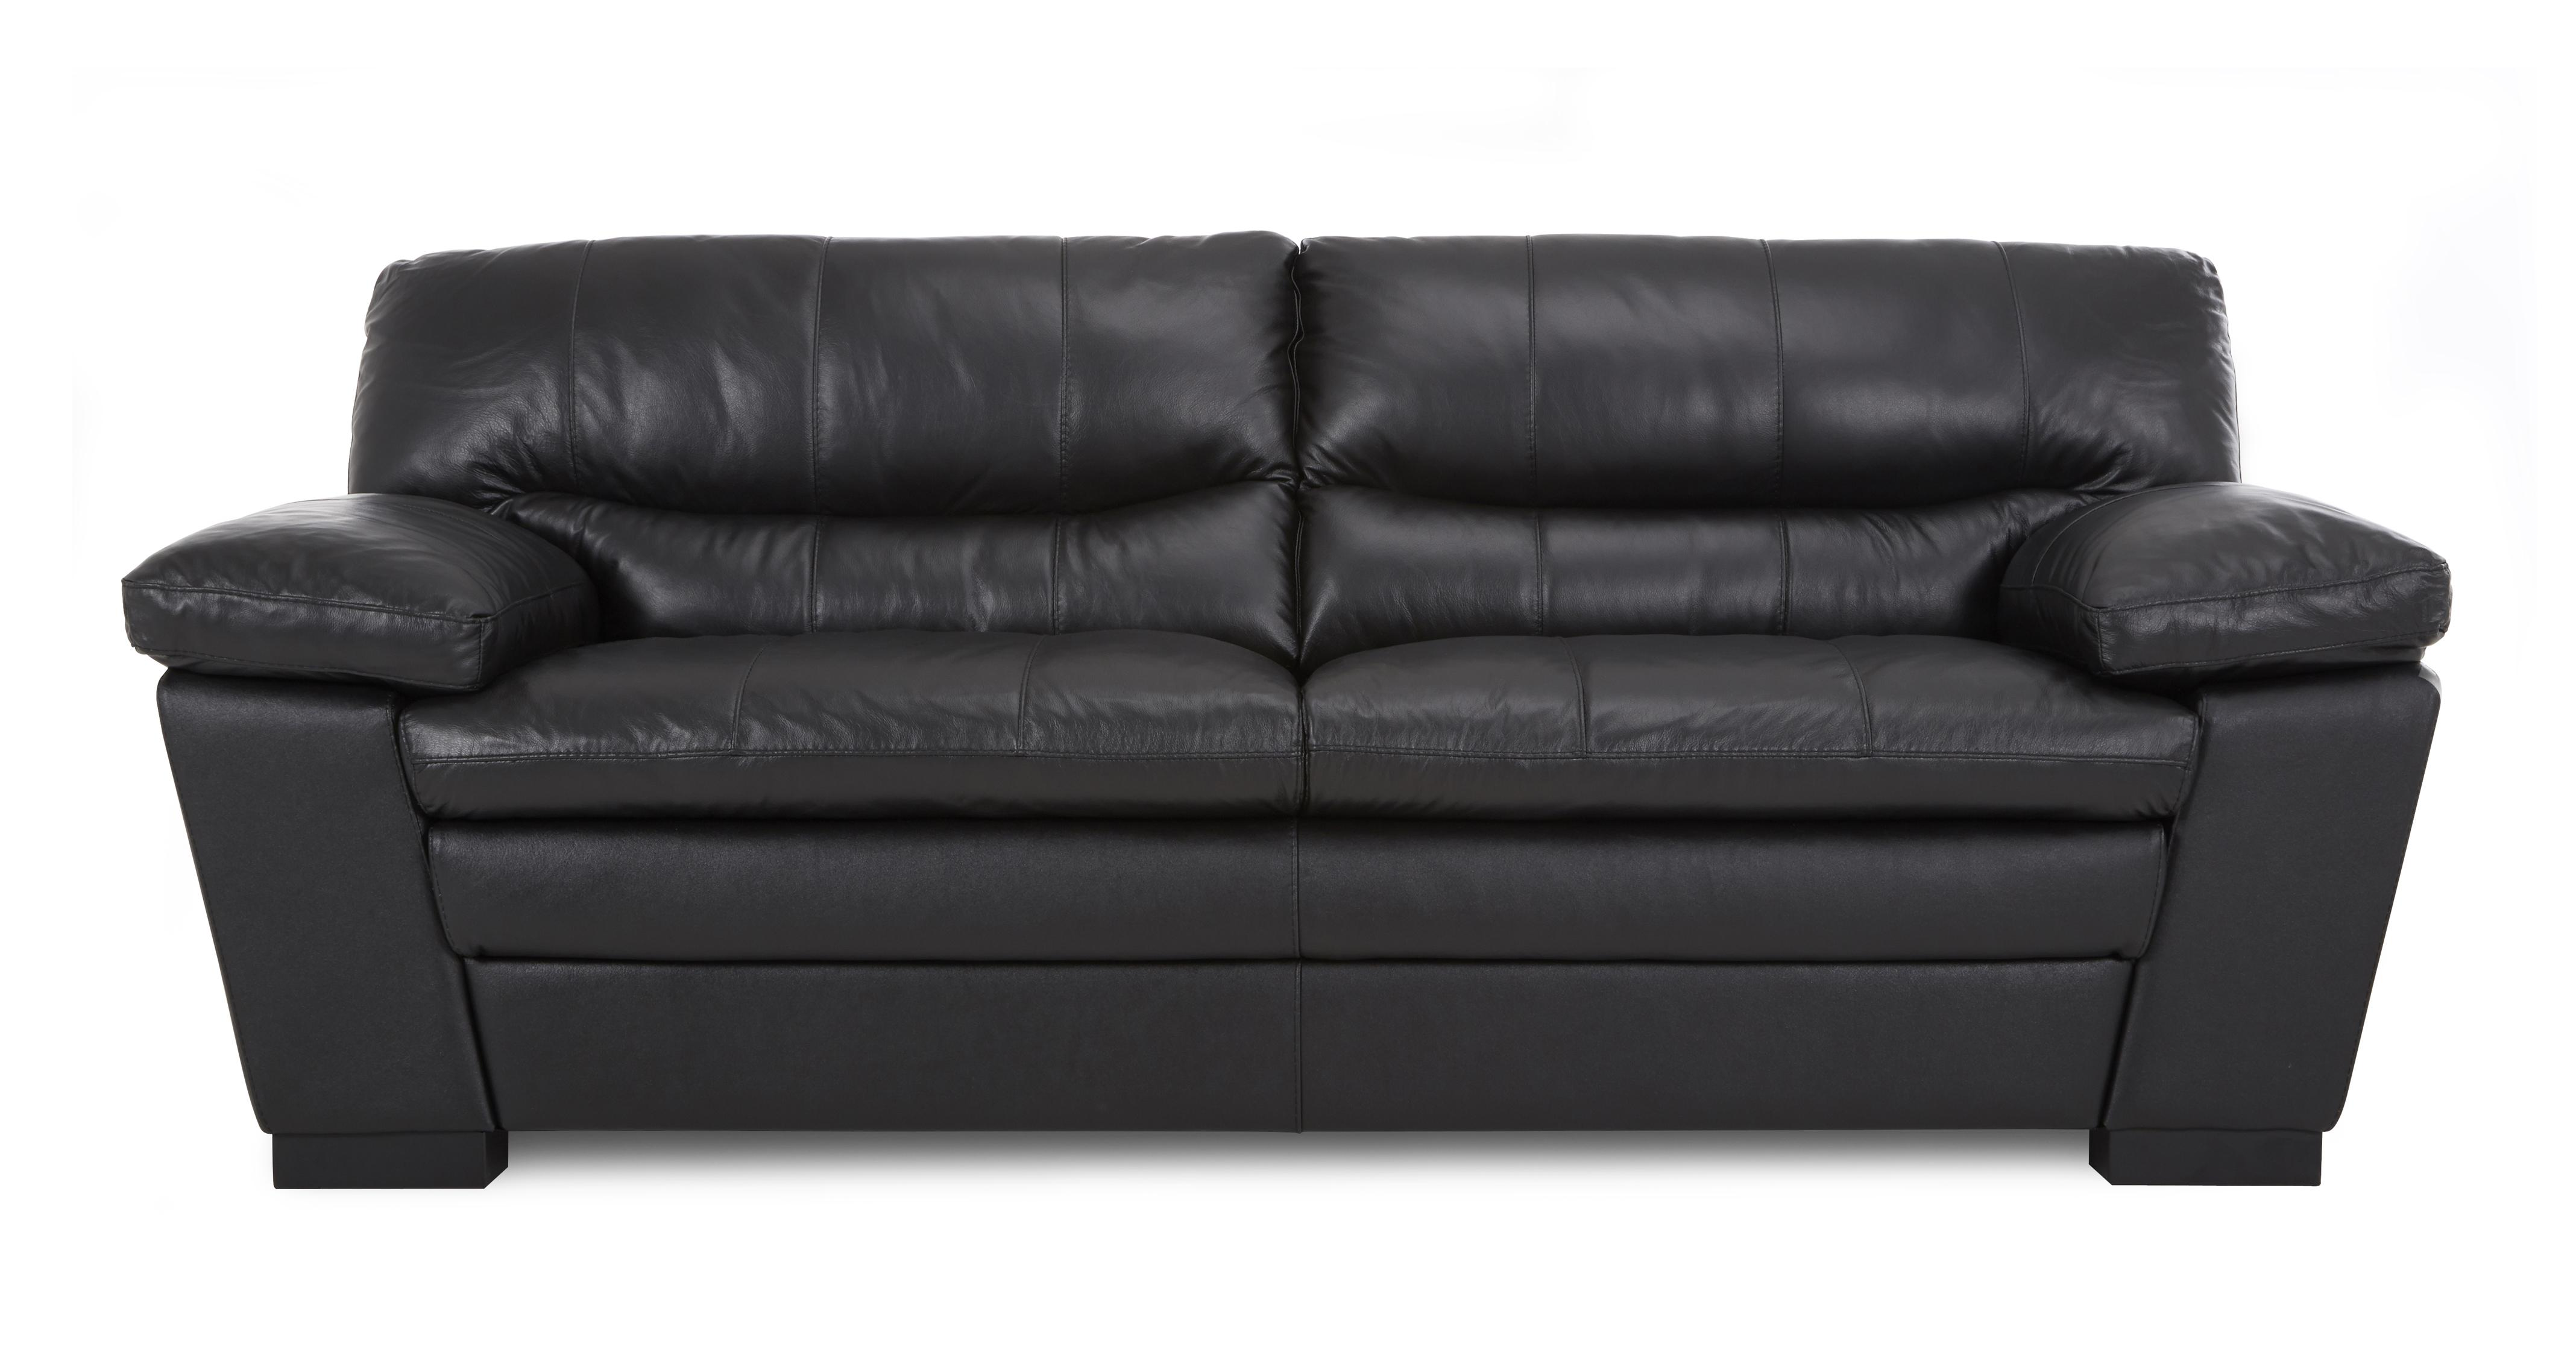 2 seater leather sofas at dfs new york modern sofa zero set inc 3 armchair